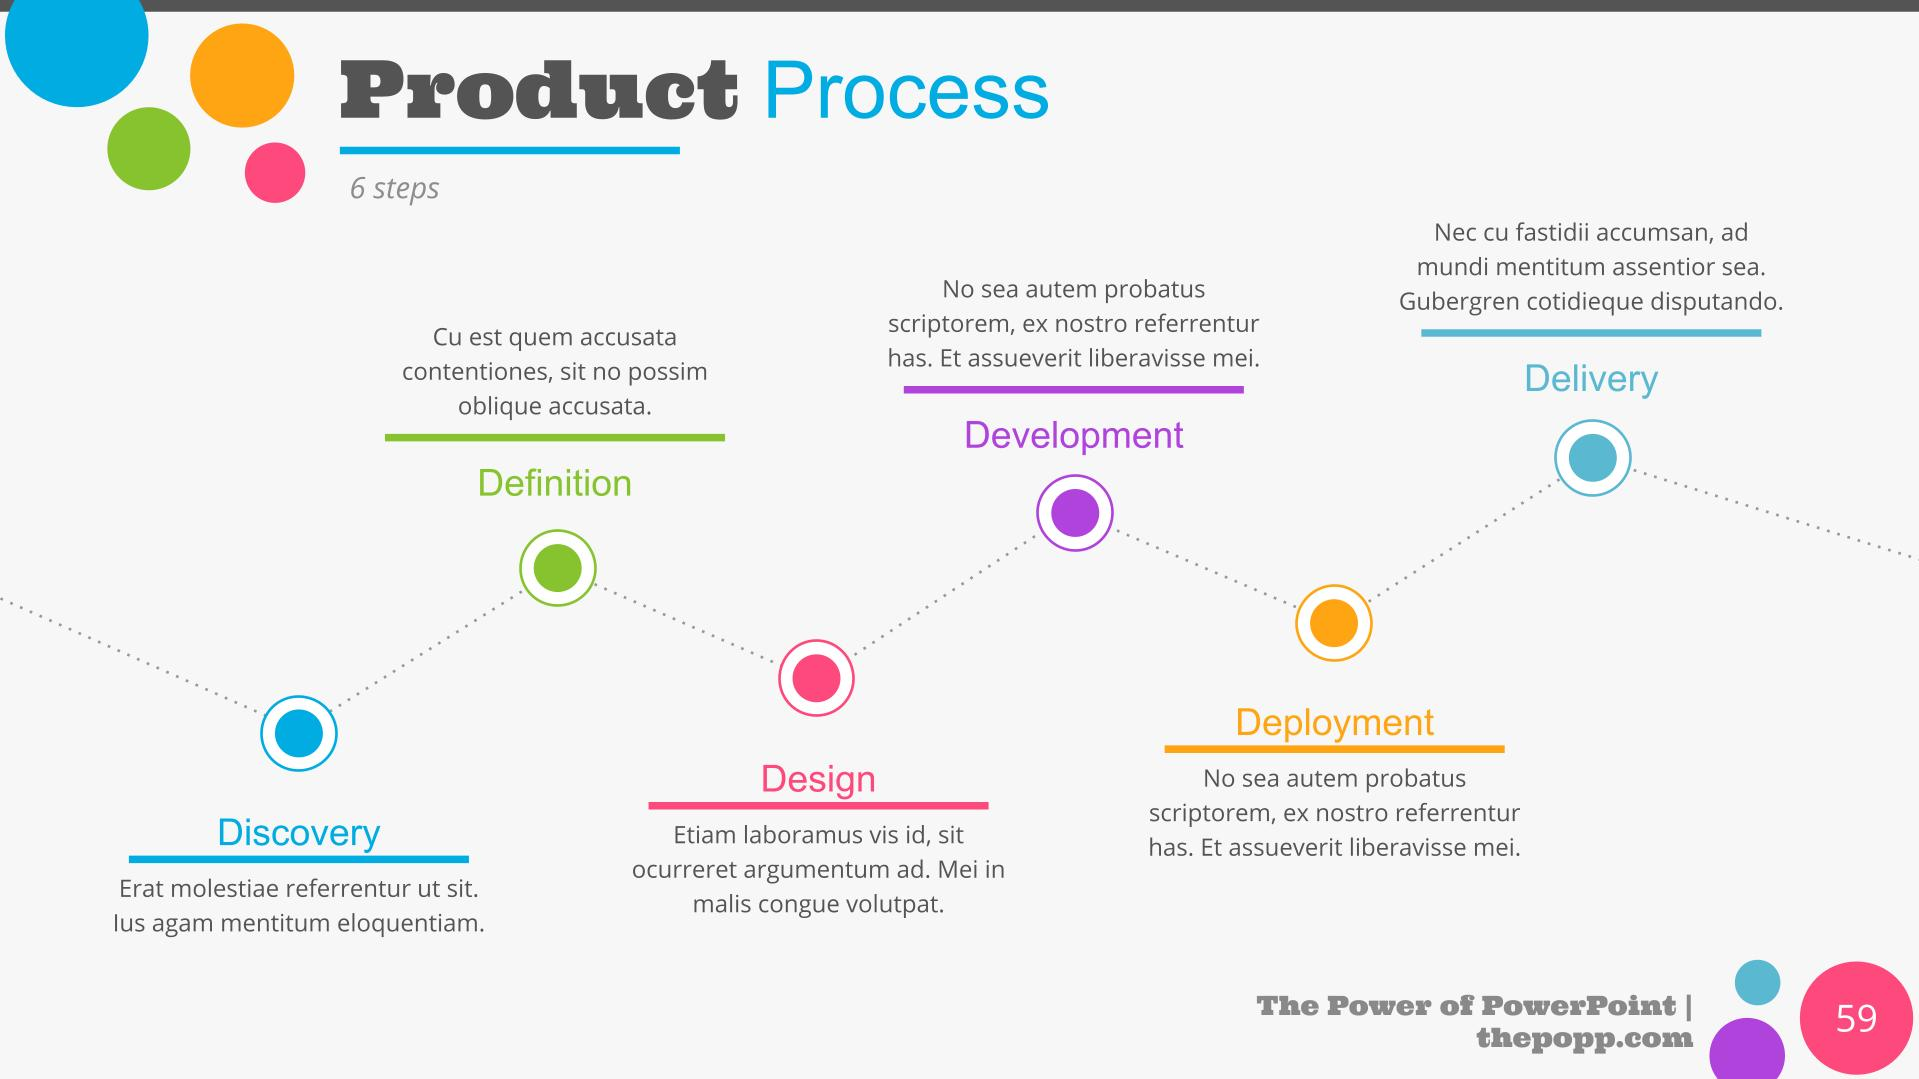 The process is described in detail through a simple and convenient infographic.